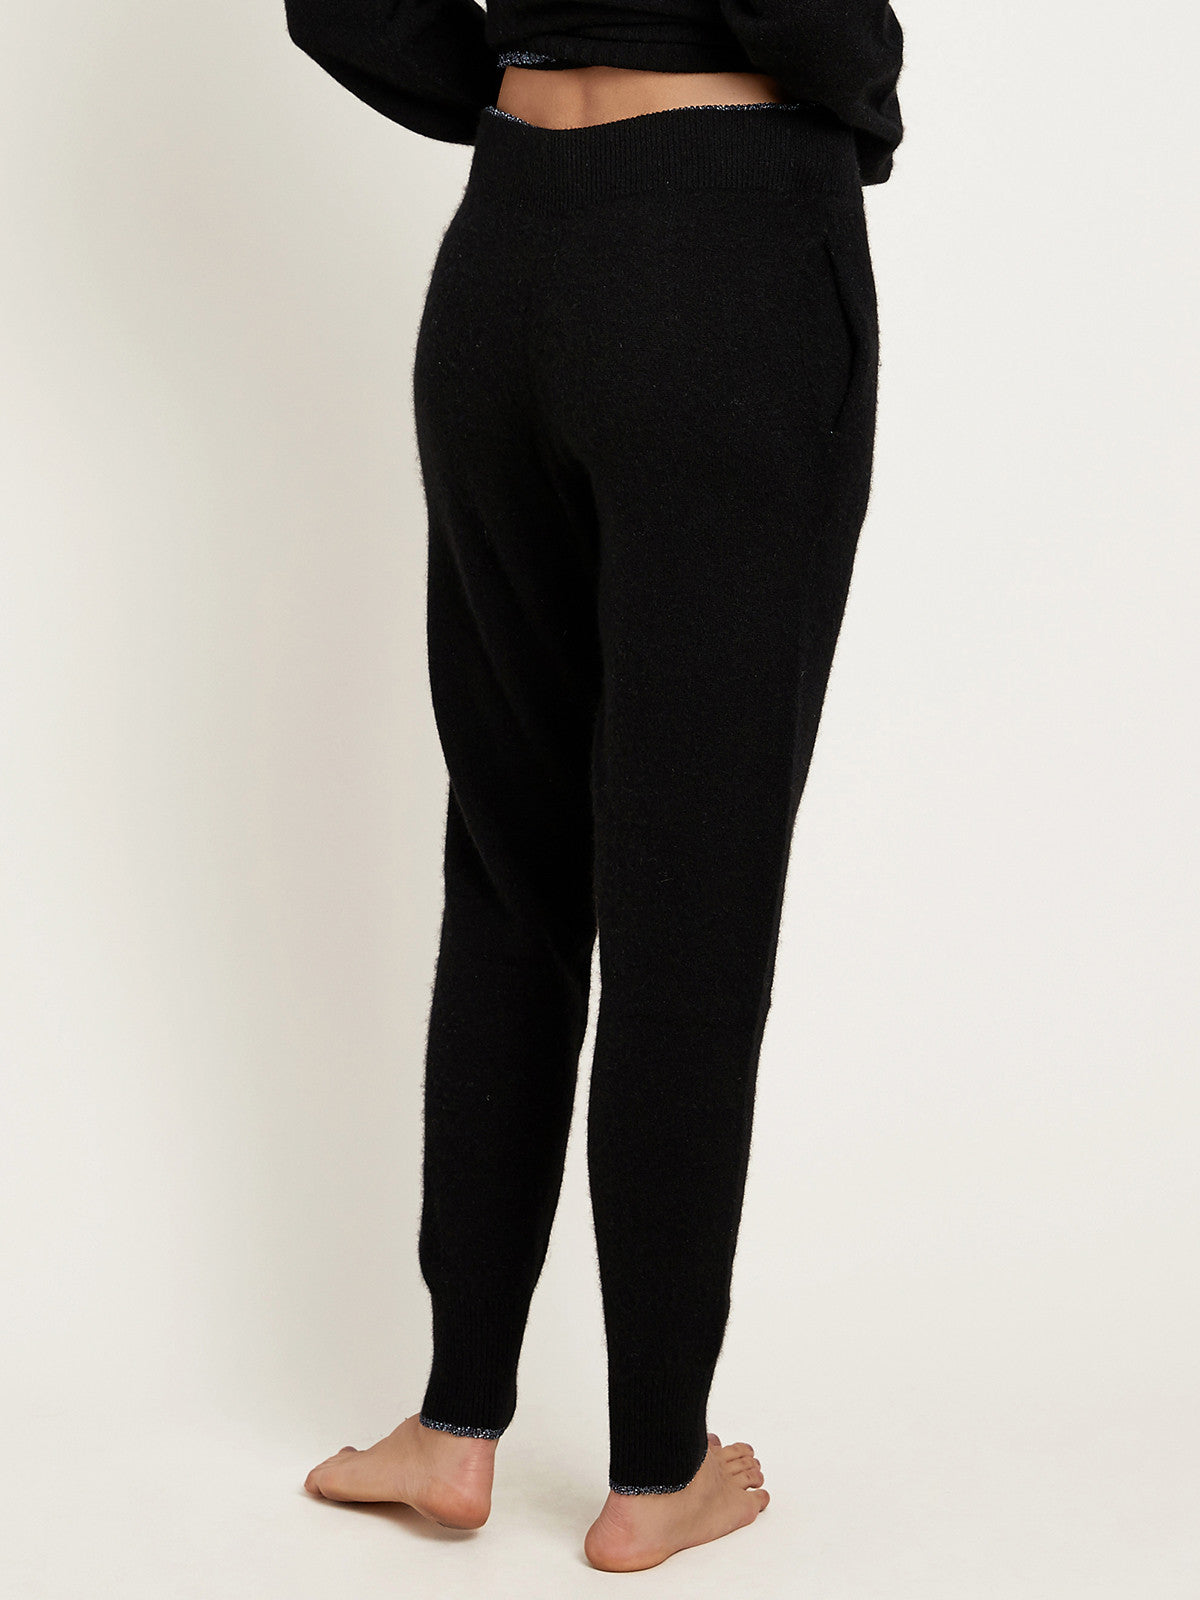 Hailey Pant in Cashmere Noir By Morgan Lane